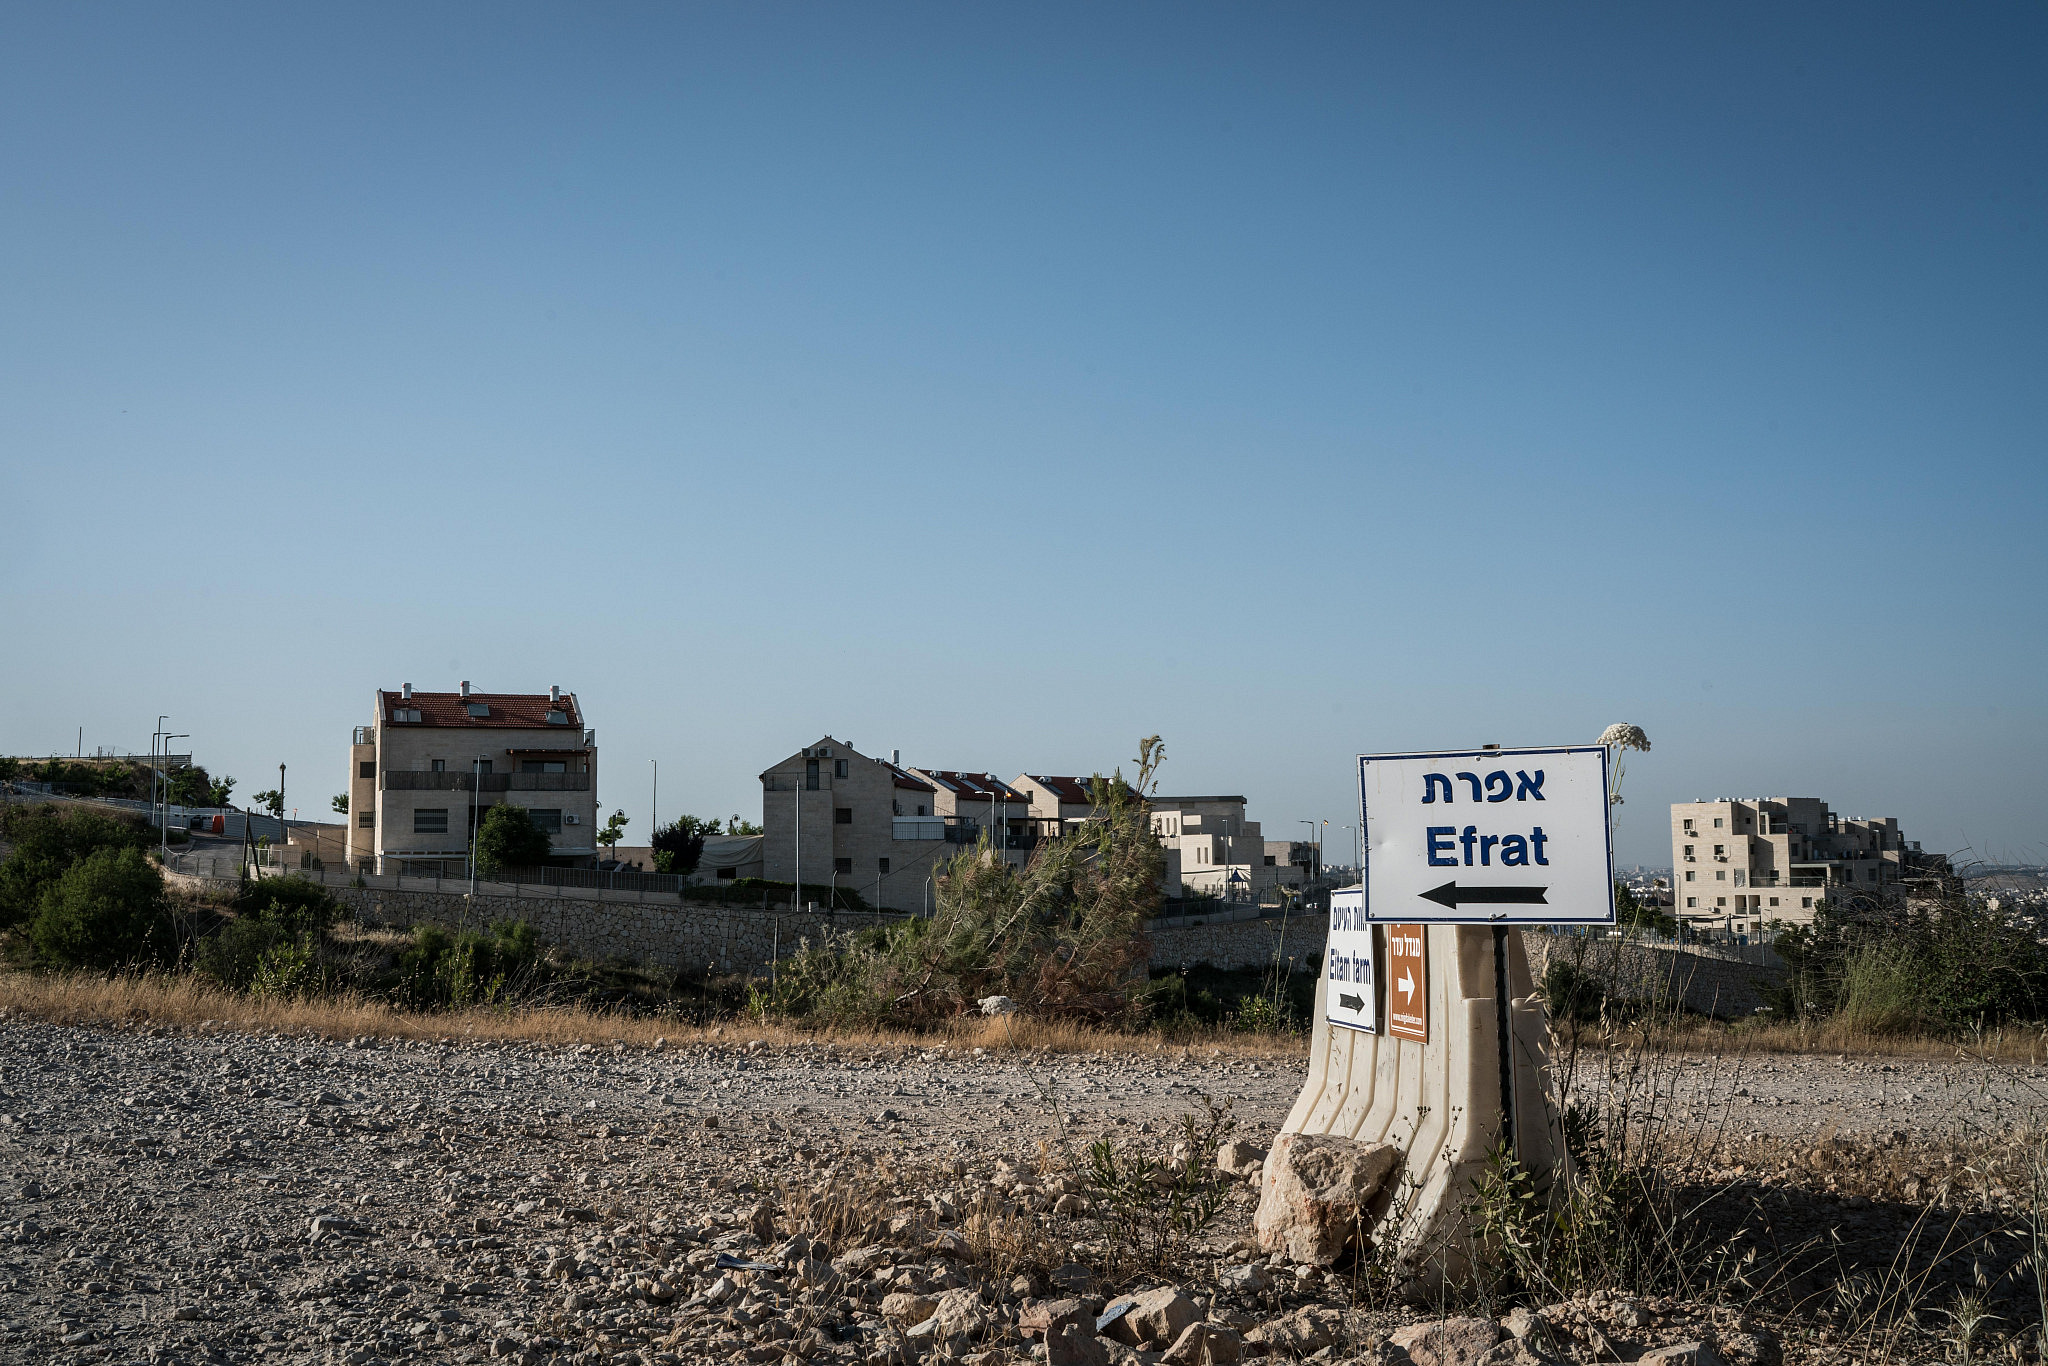 A sign pointing to the Israeli settlement of Efrat in the occupied West Bank. June, 2020. (Samar Hazboun)